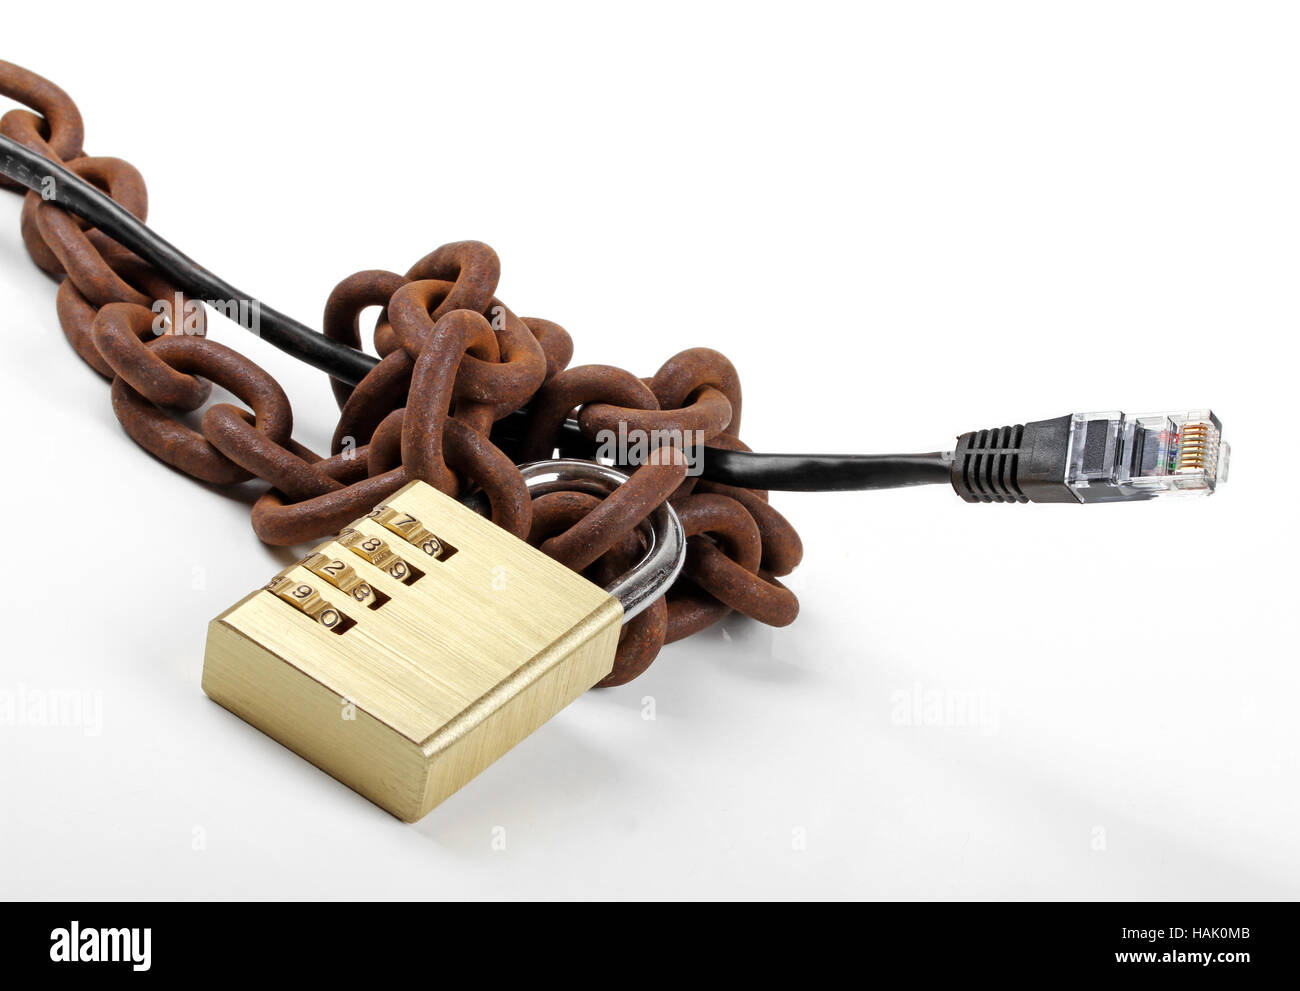 Internet Censorship Stockfotos & Internet Censorship Bilder - Alamy